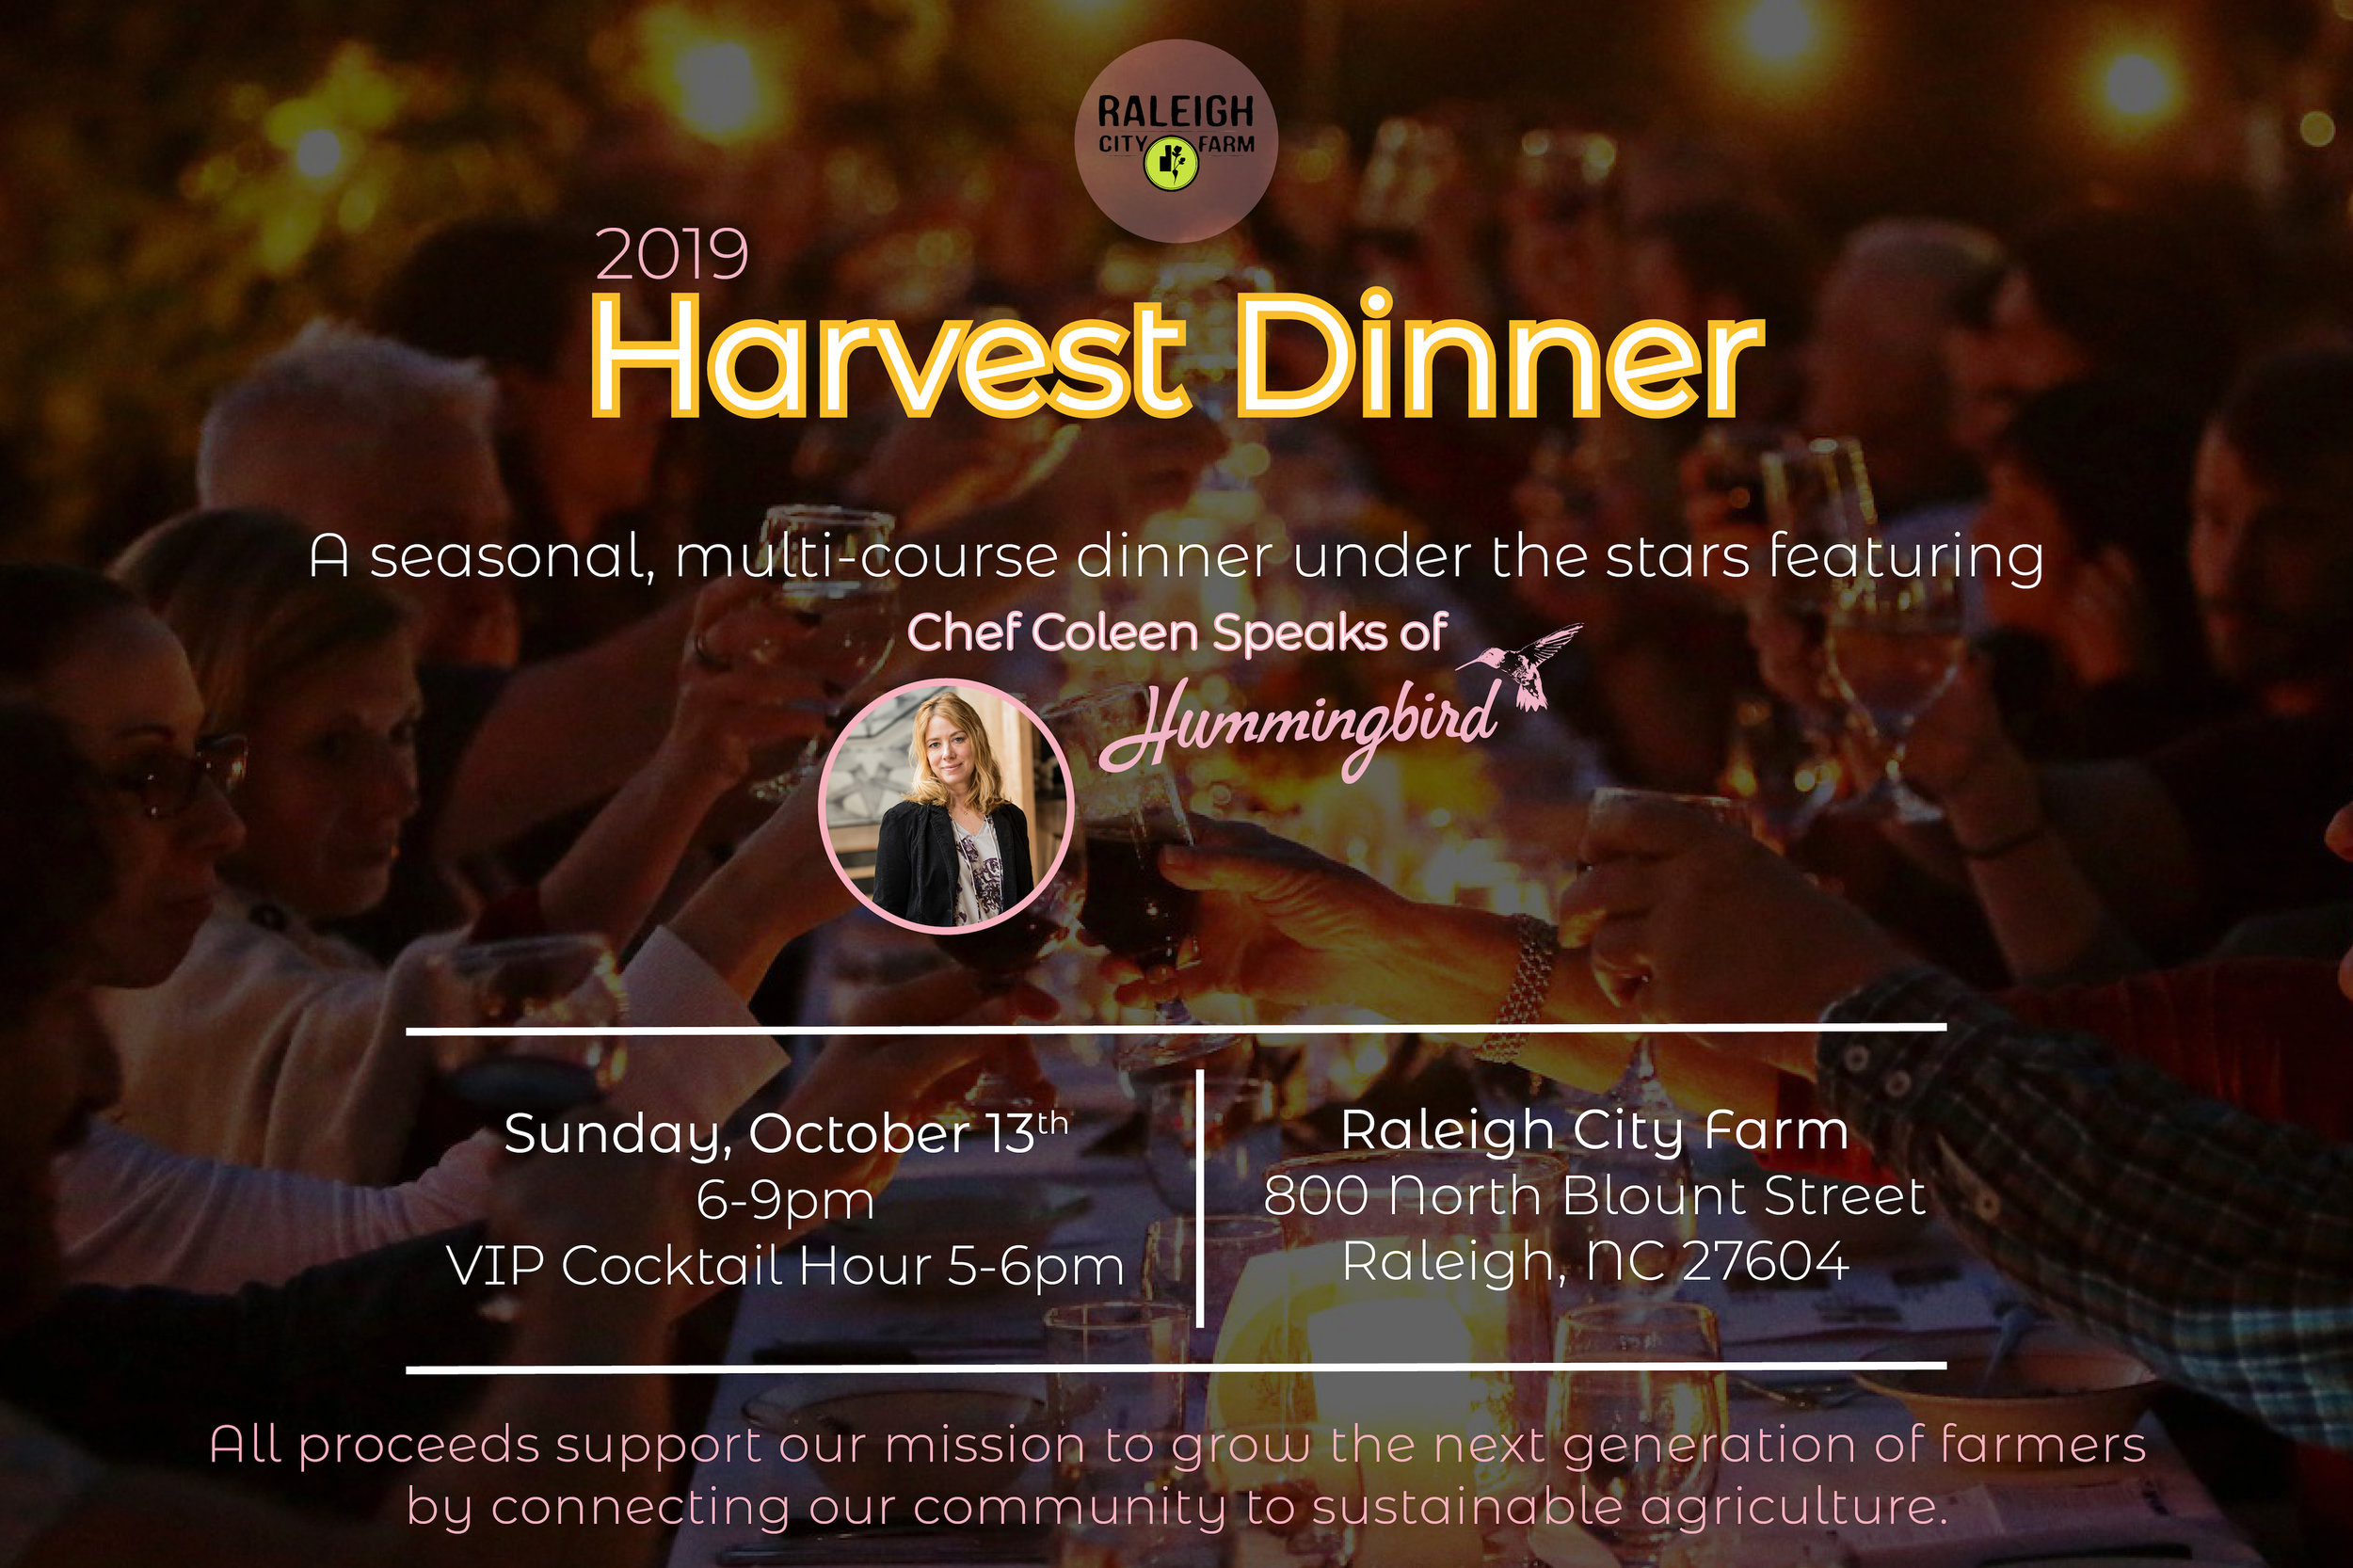 Harvest Dinner 2019 Raleigh City Farm.jpg